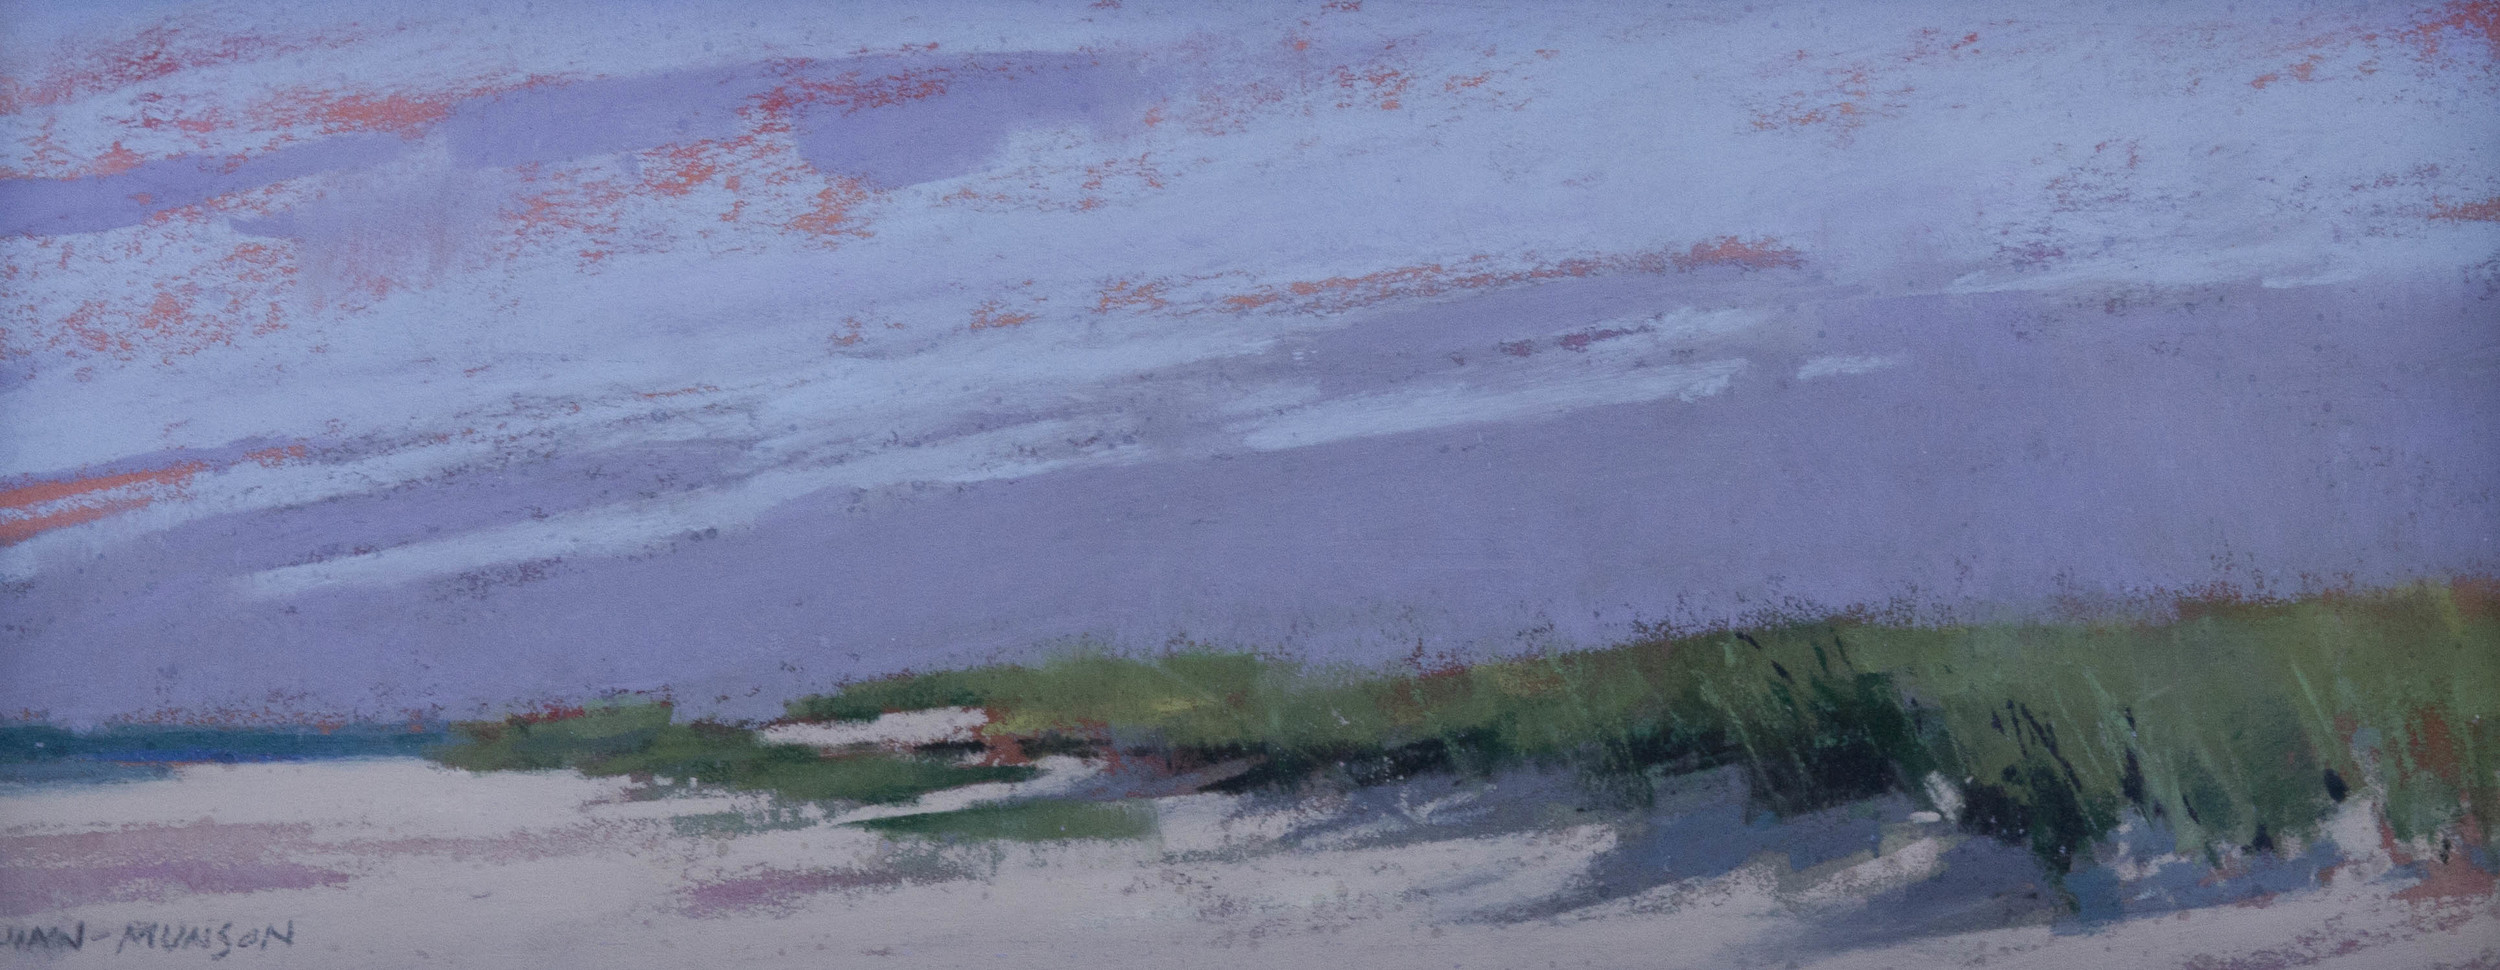 September Dune  , Deborah Quinn-Munson.  Sold